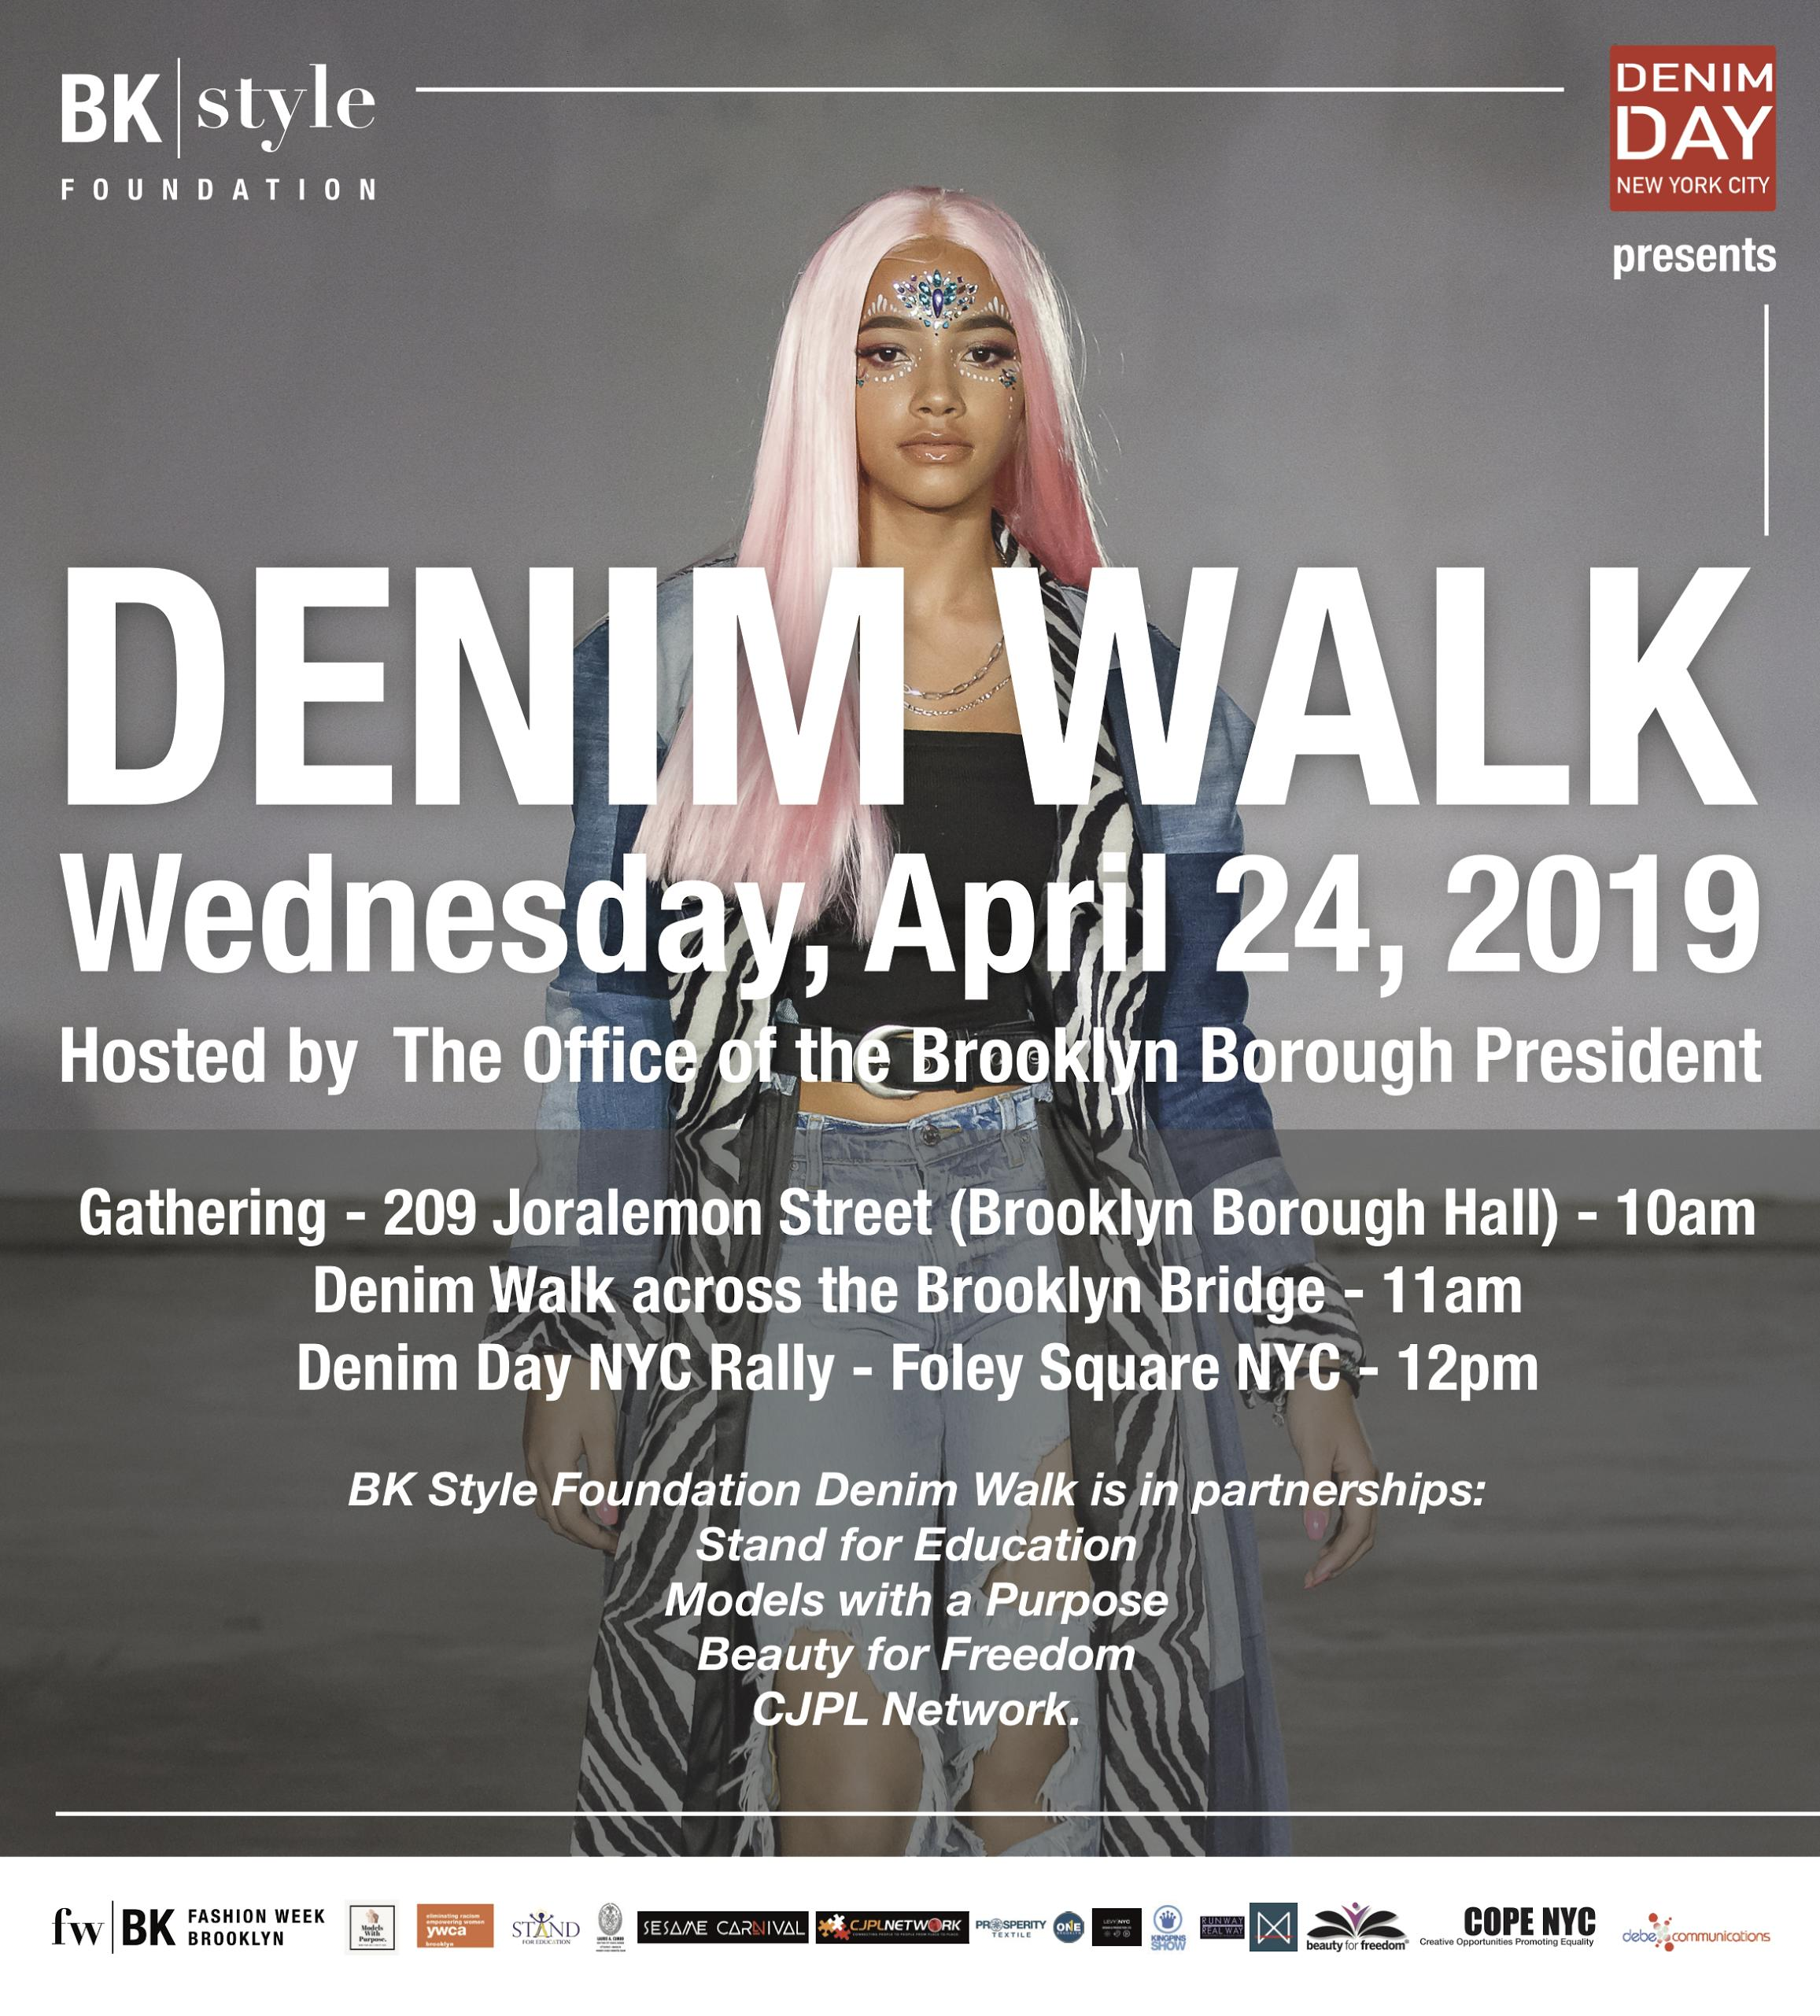 Denim Walk 2019 — Denim Day NYC Coalition to End Sexual Violence